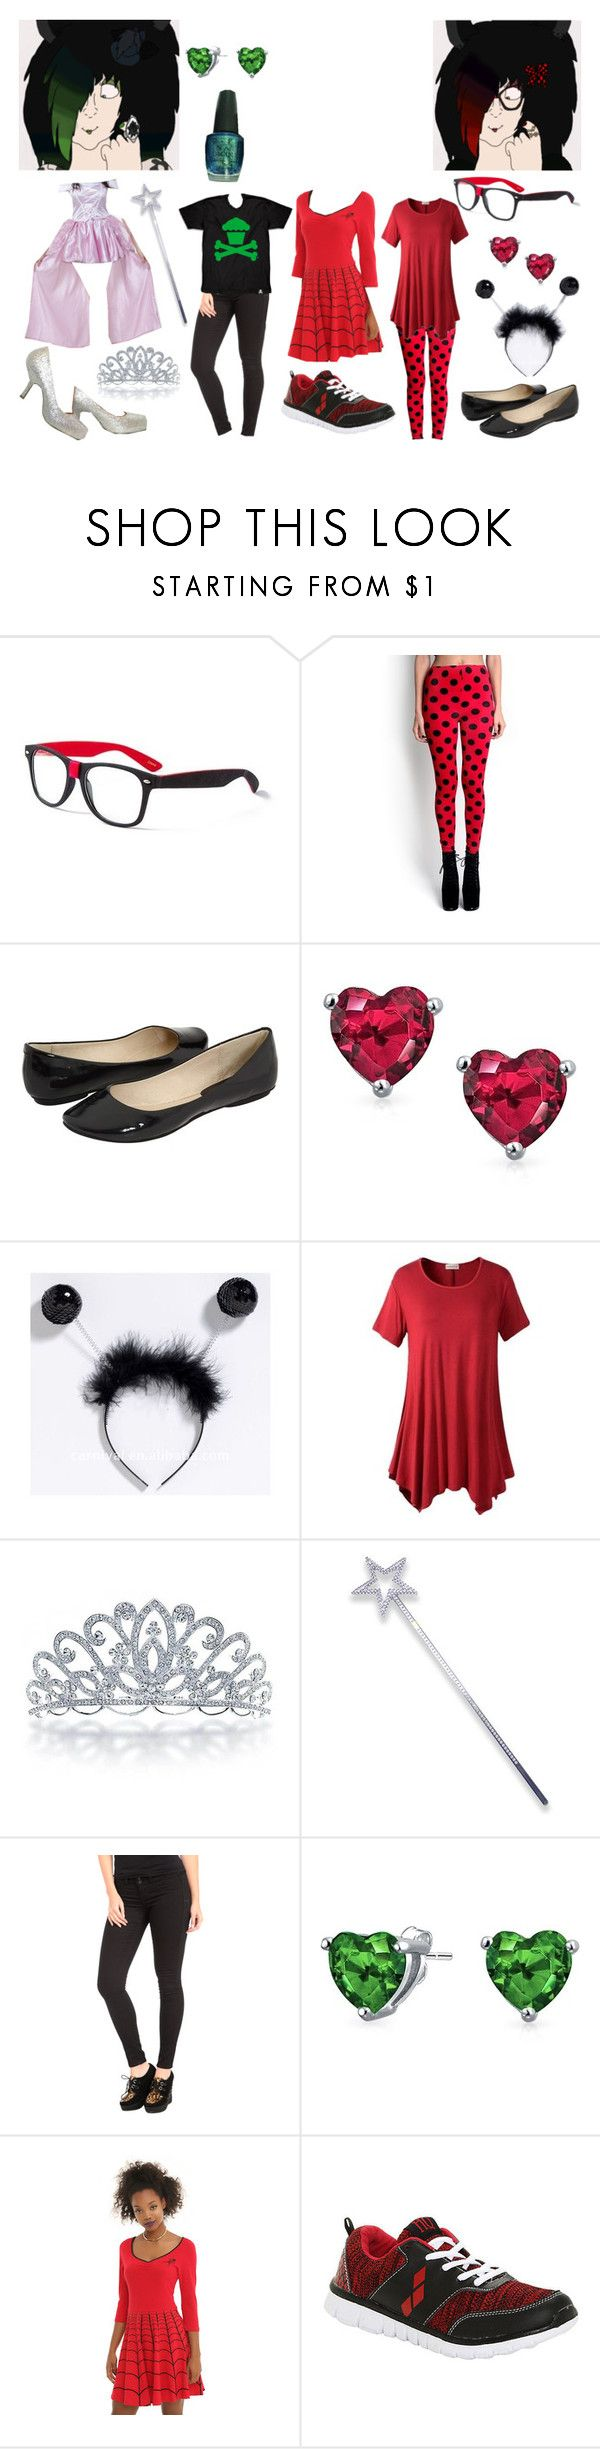 """""""Venus/Mars KLM (ABC) Ch. 4"""" by brainyxbat ❤ liked on Polyvore featuring claire's, Kenneth Cole Reaction, Bling Jewelry, Hot Topic and Kreepsville 666"""